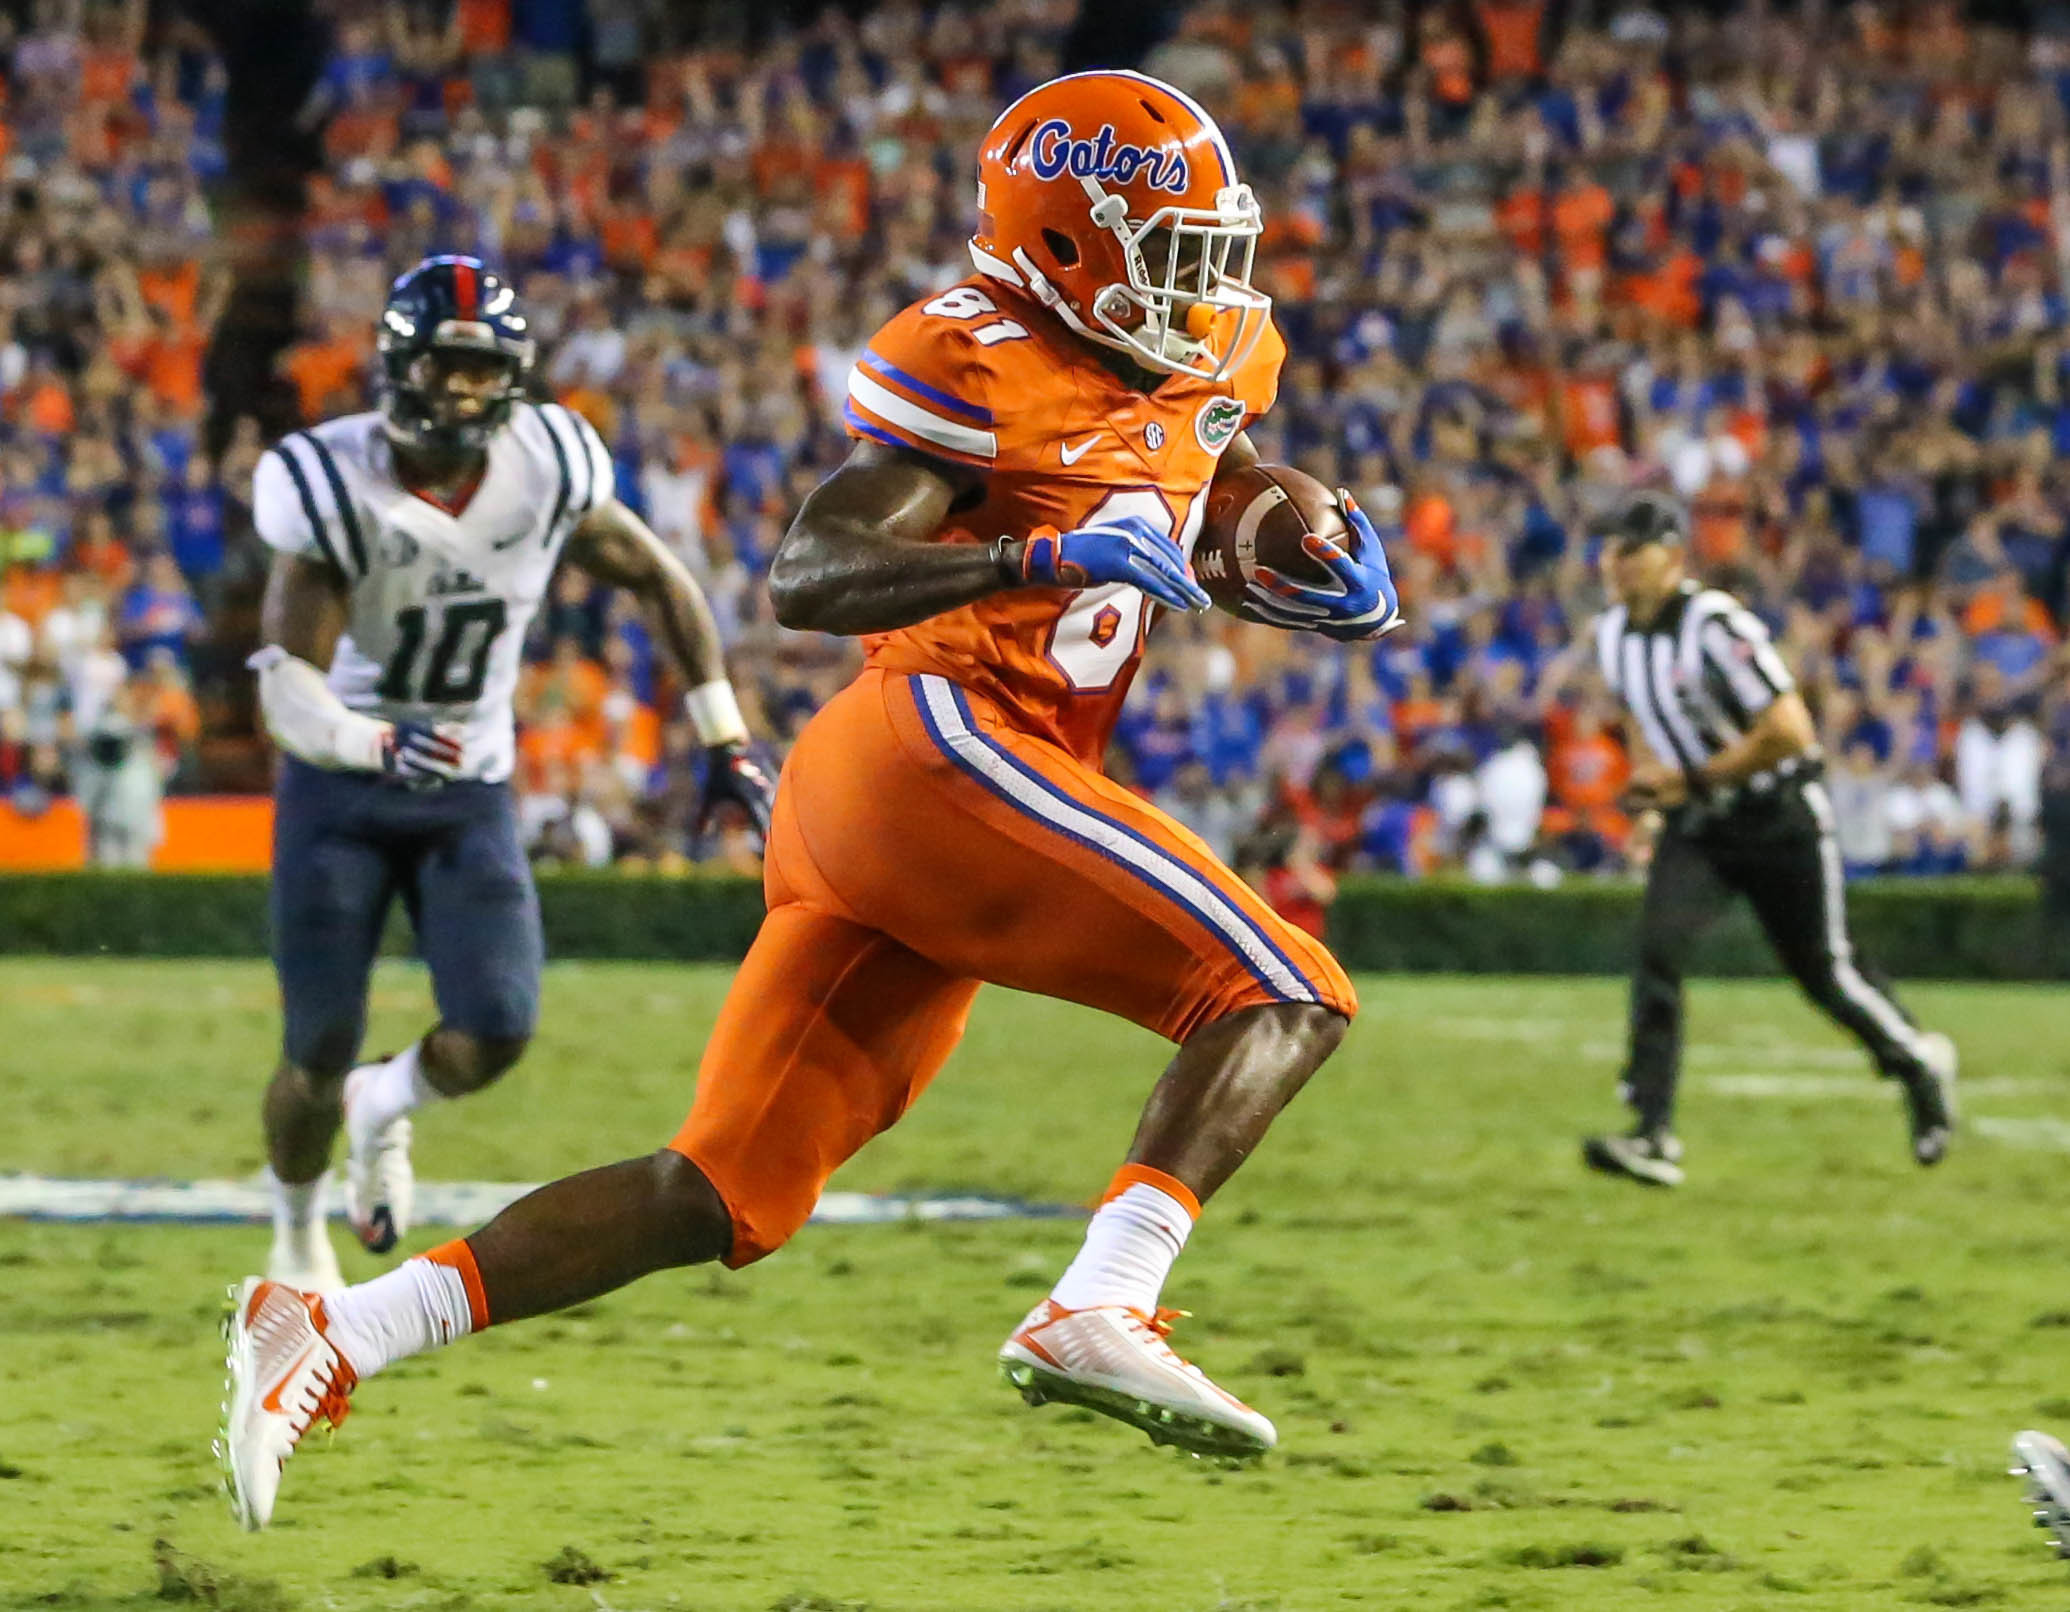 FILE - In this Oct. 3, 2015, file photo, Florida wide receiver Antonio Callaway (81) runs the ball in for a touchdown after making a catch against Mississippi during the first half of an NCAA college football game in Gainesville, Fla.  Callaway, suspended